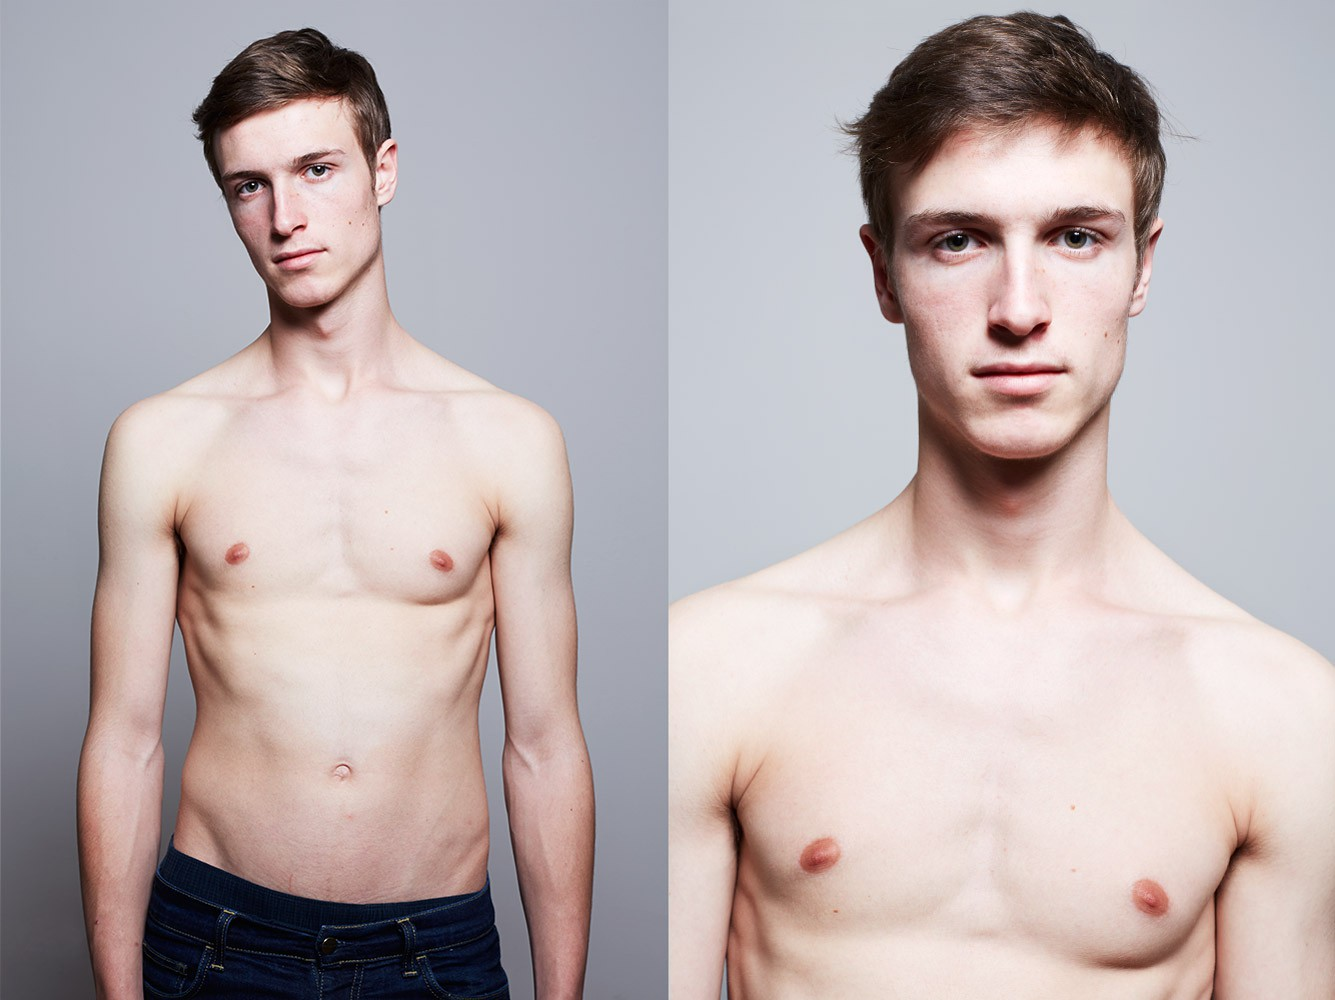 Fresh face on the board of Tomorrow Is Another Day Agency presents Egon van Praet, beautiful face and toned body. All the exact measurements to hit the road.